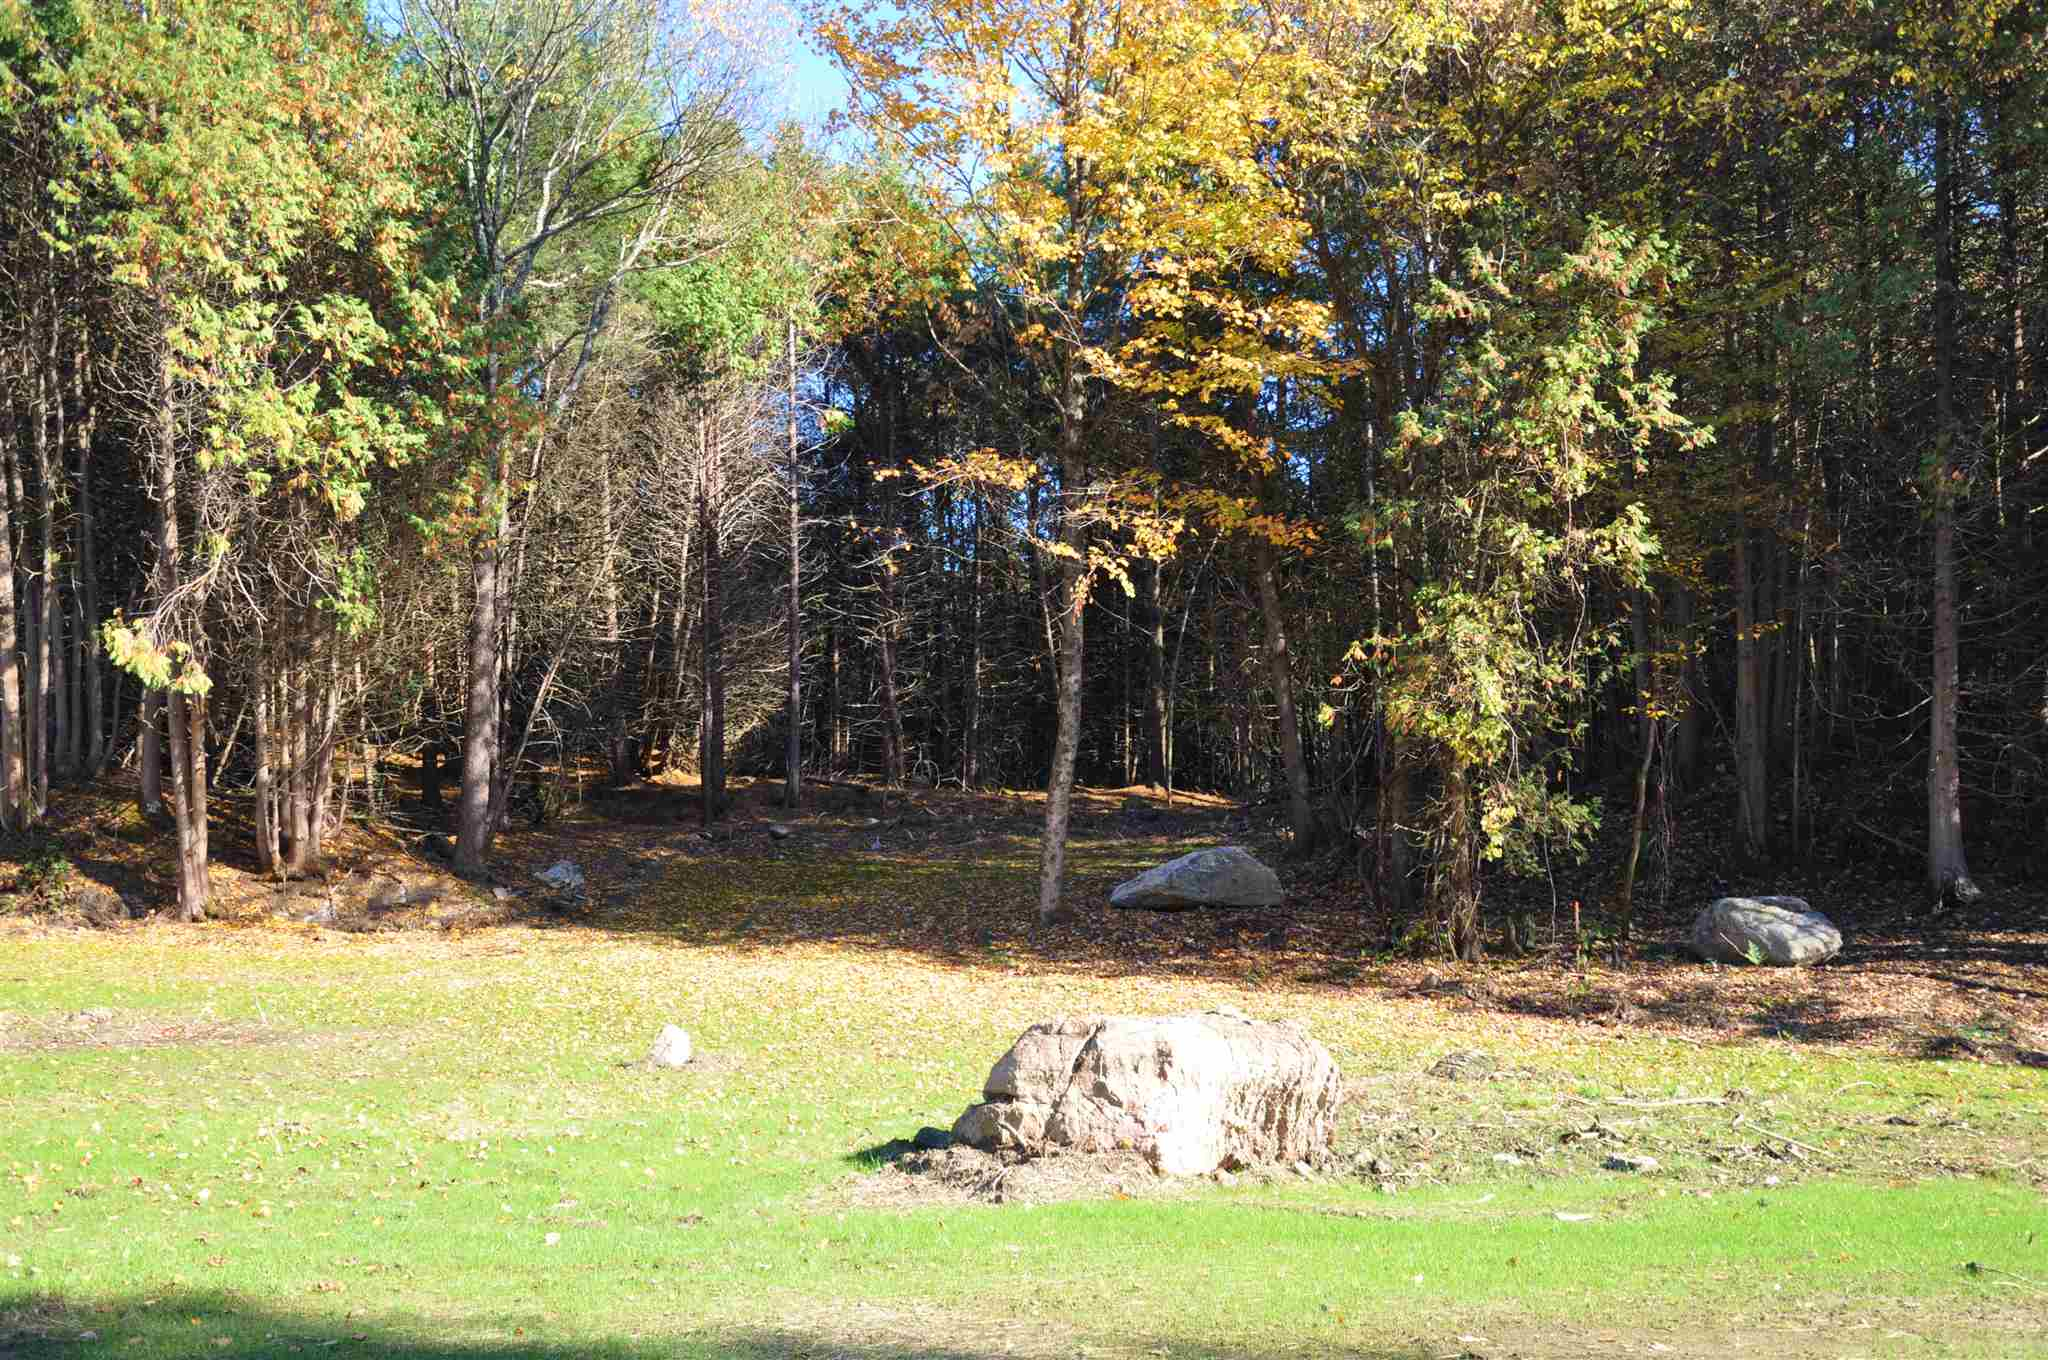 Private 3-lot community, ready to build 6 acre lot at Finney Ridge in Shelburne.  Lovely private wooded lot with easy access to downtown Burlington, UVM Medical Center and Burlington International Airport.  All permits in place, underground power at site.